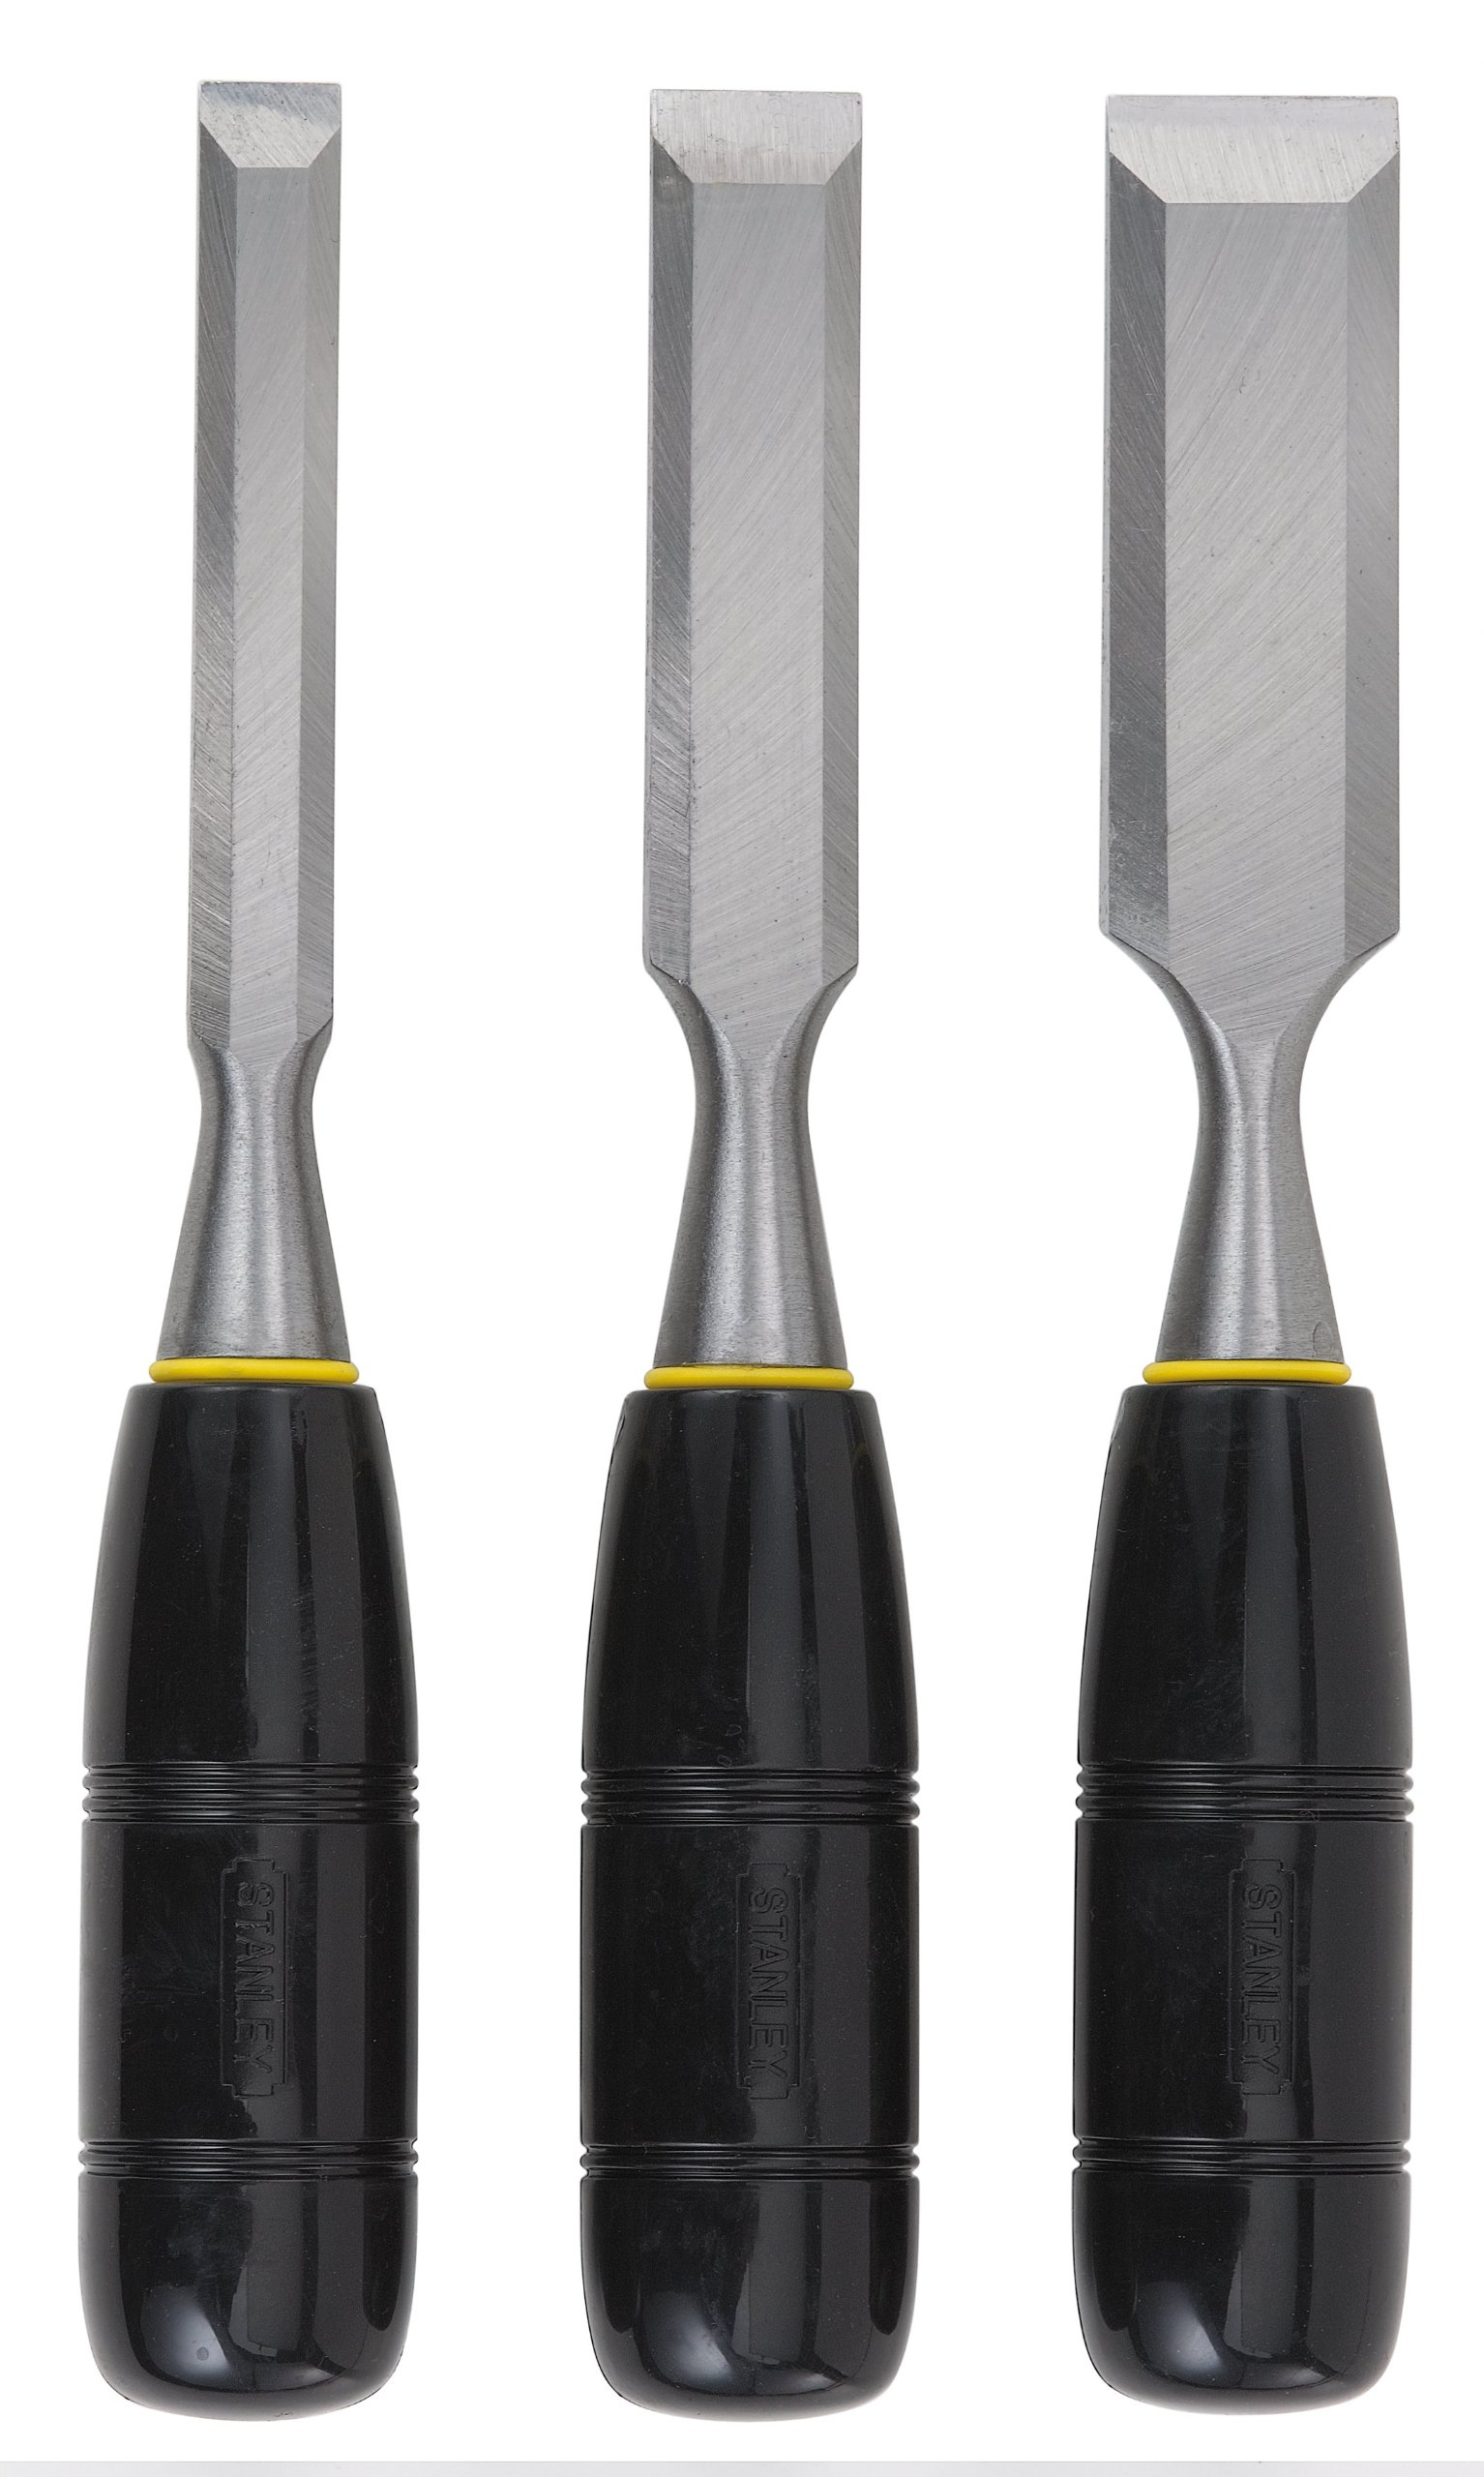 Stanley 16-150 150 Series Short Blade 3-Piece Wood Chisel Set by Stanley